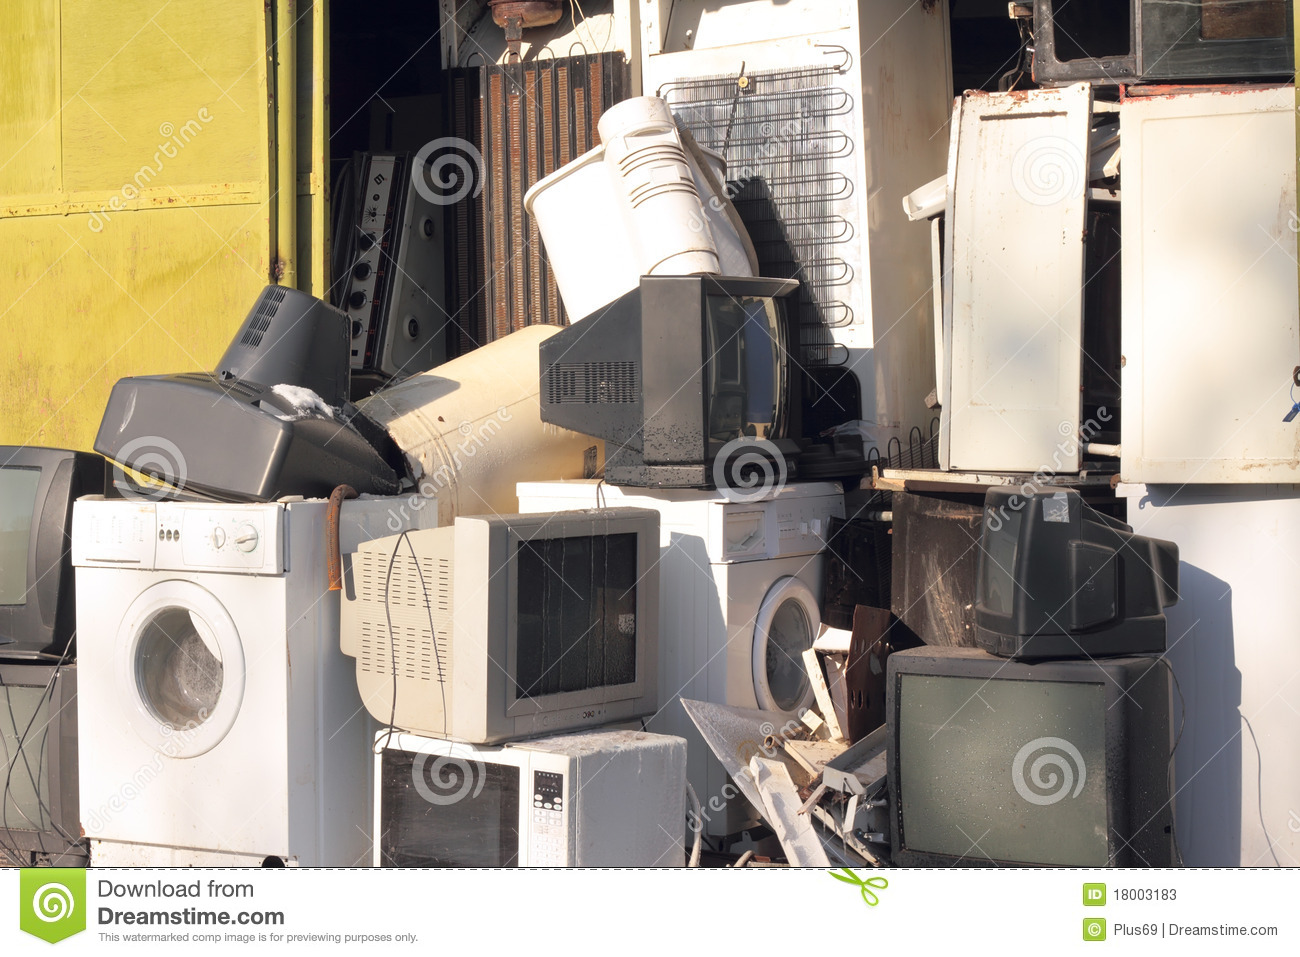 Dumping of household appliances